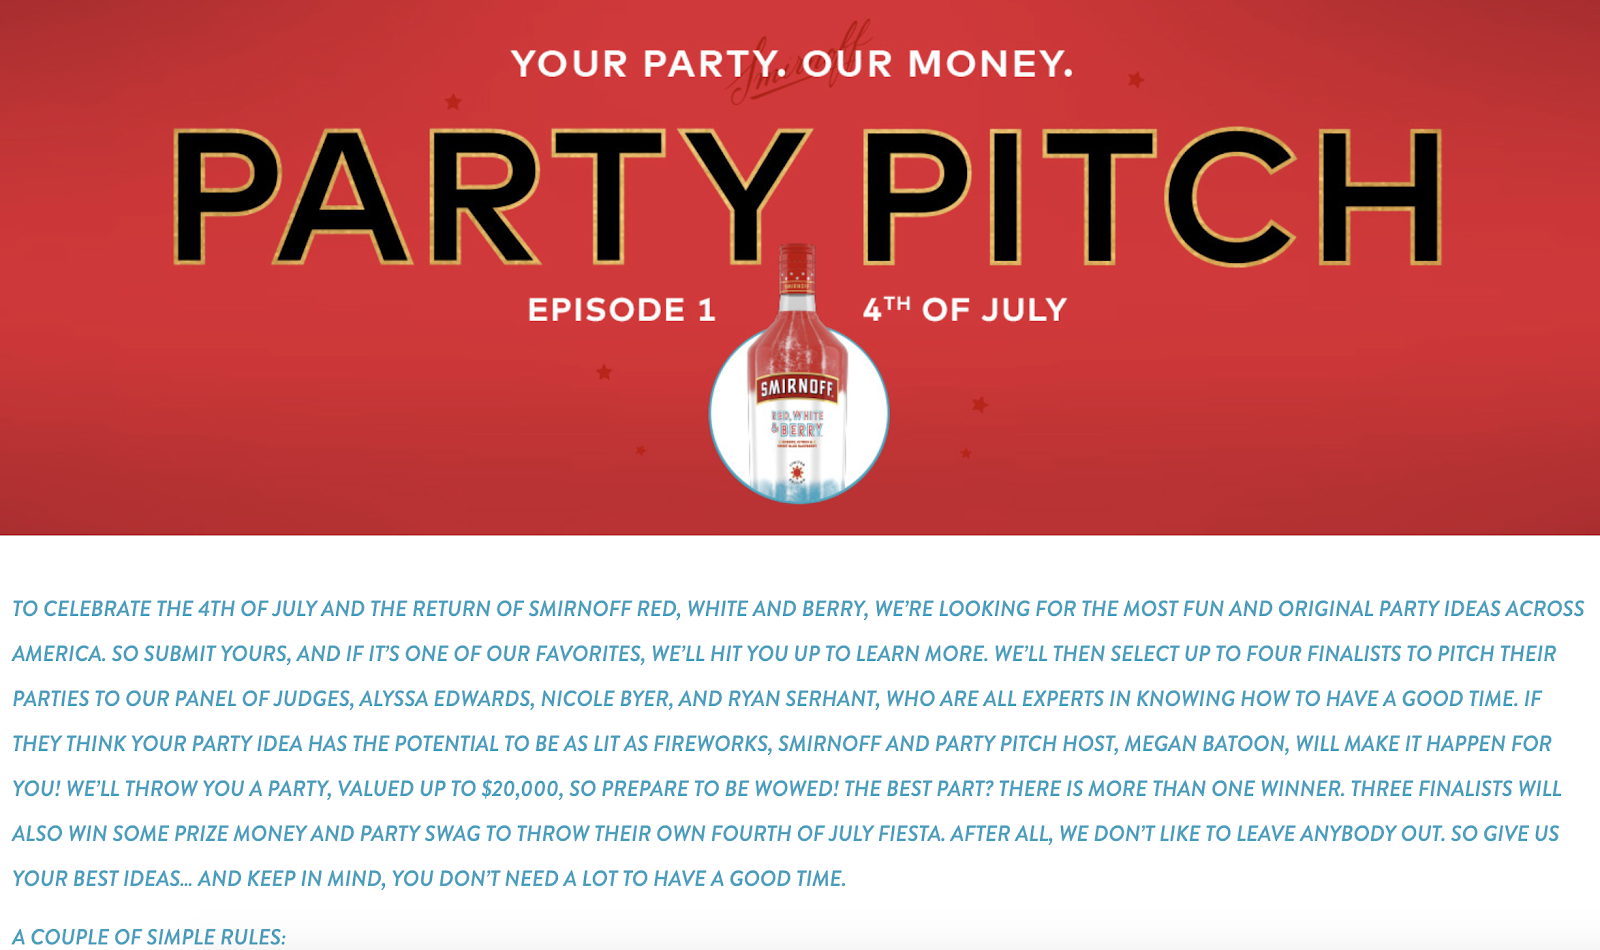 Smirnoff: July 4th Party Pitch